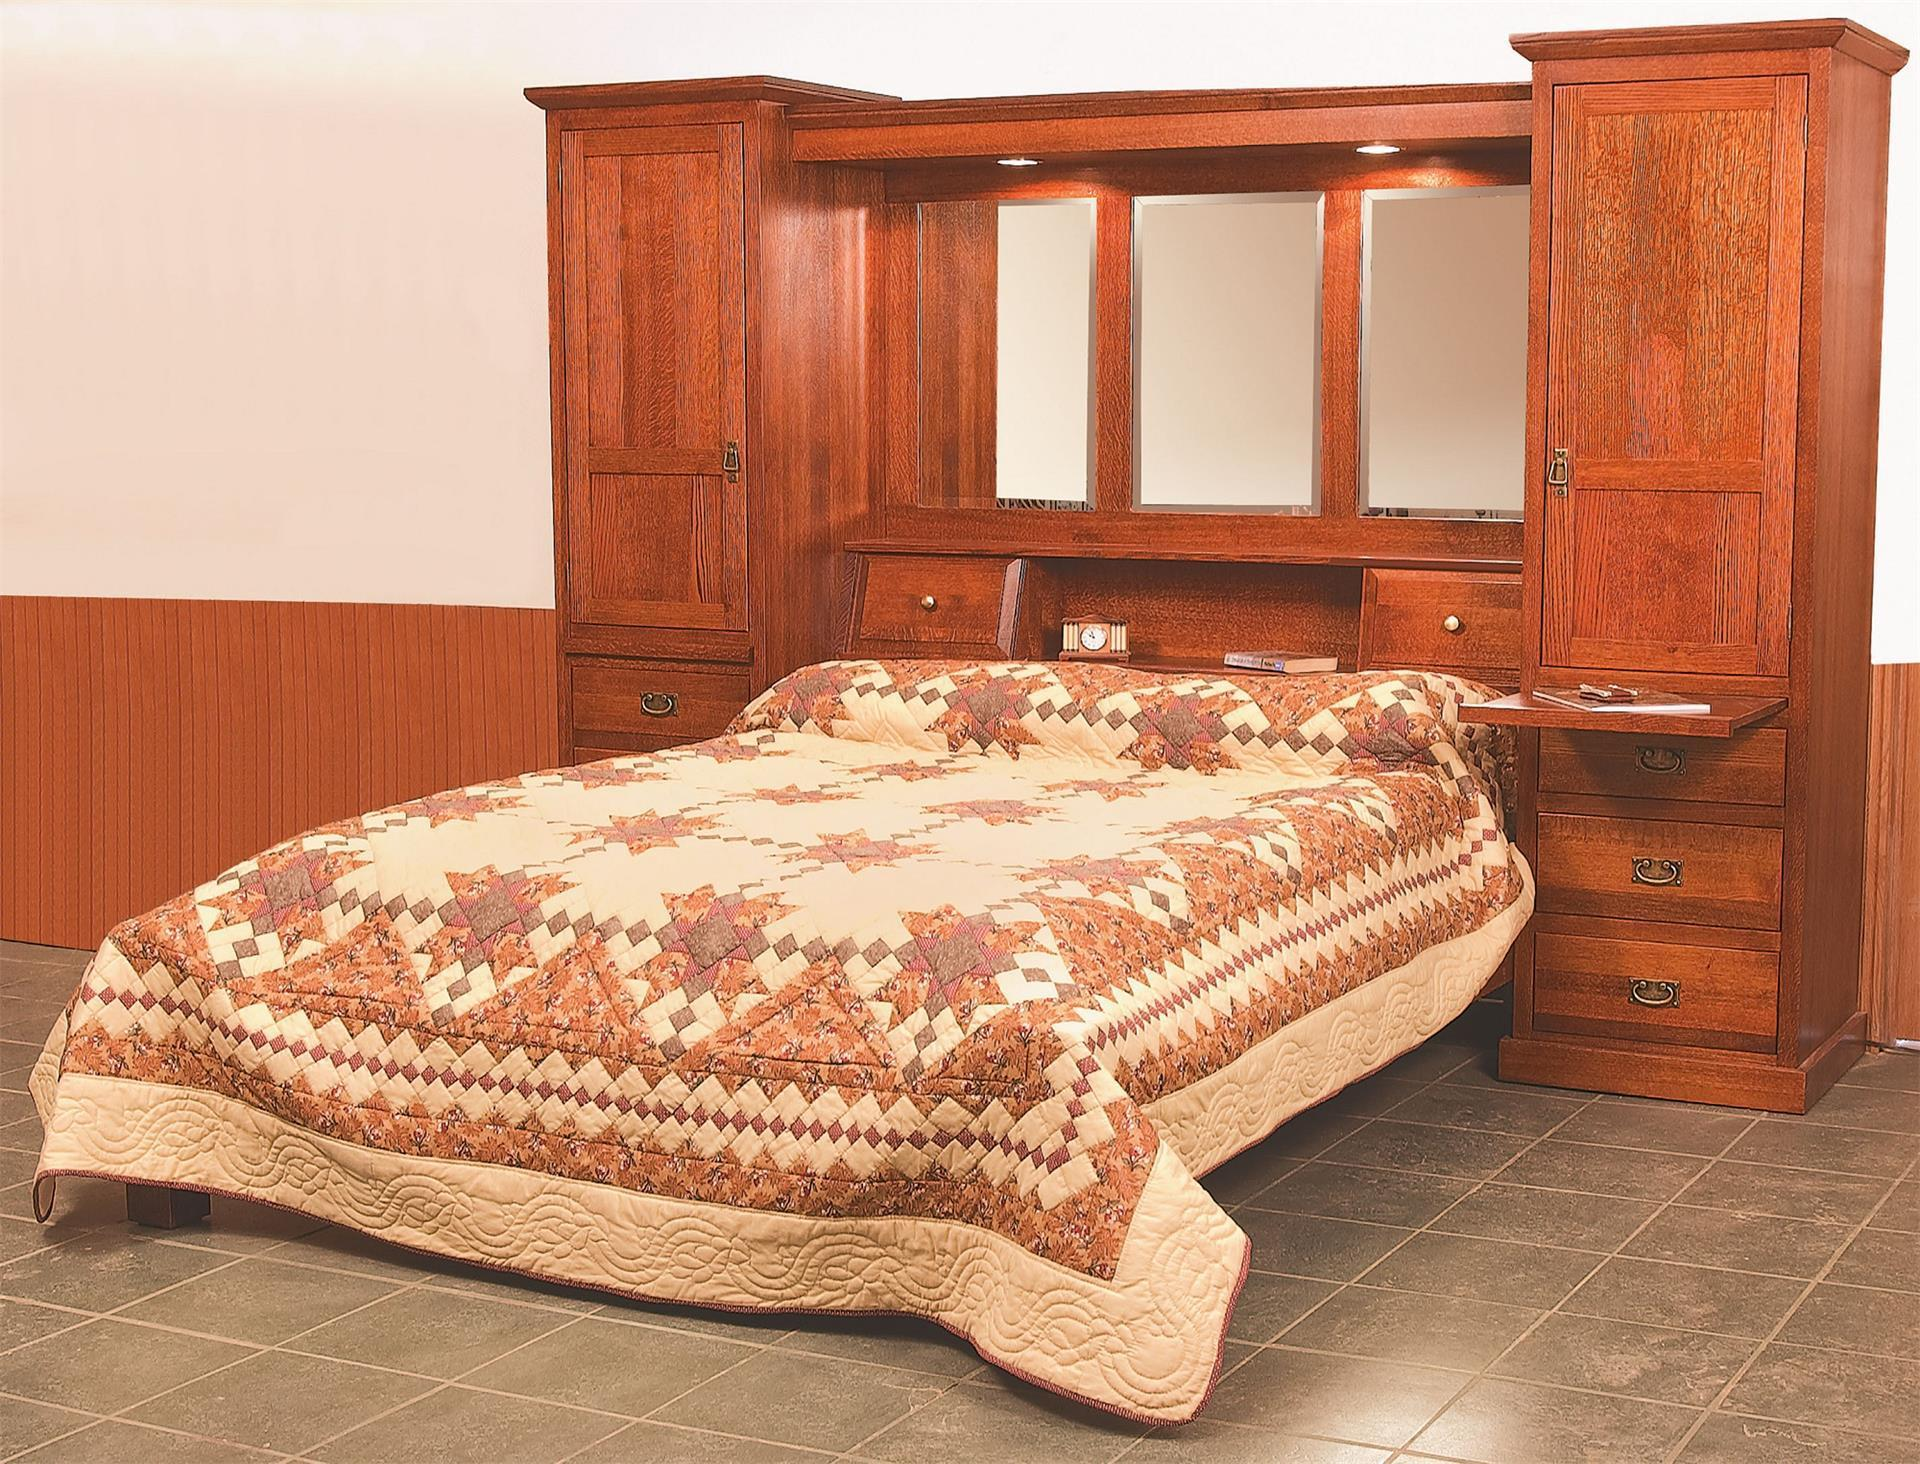 Amish Mission Pier Group Bed From Dutchcrafters Amish Furniture,Rustic French Country Bedroom Furniture